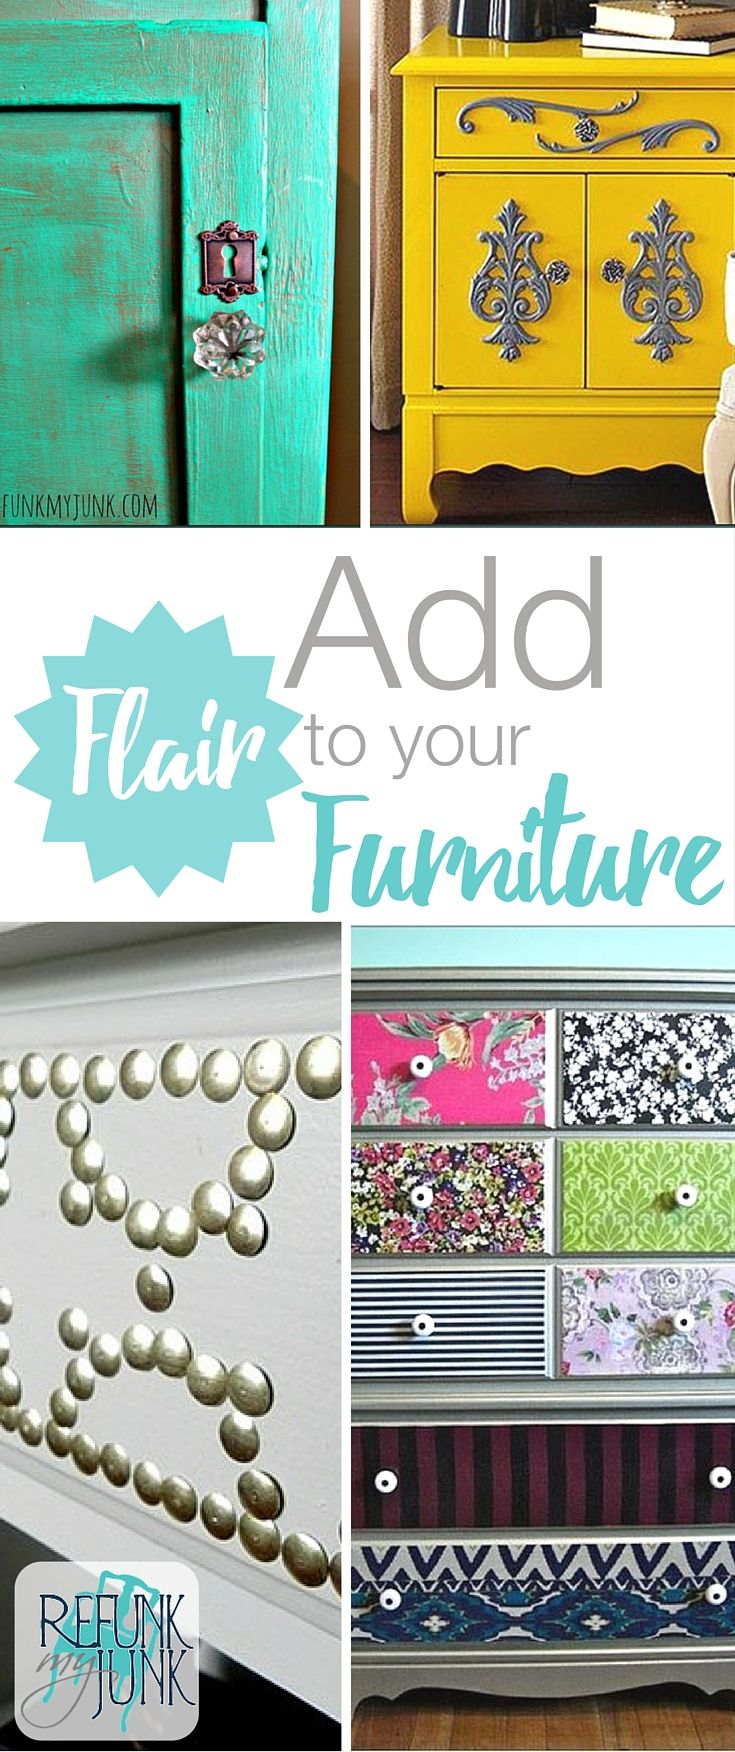 Diy furniture painting ideas - 5 Ways To Add Flair To Your Furniture And Other Diy Furniture Painting Ideas And Techniques